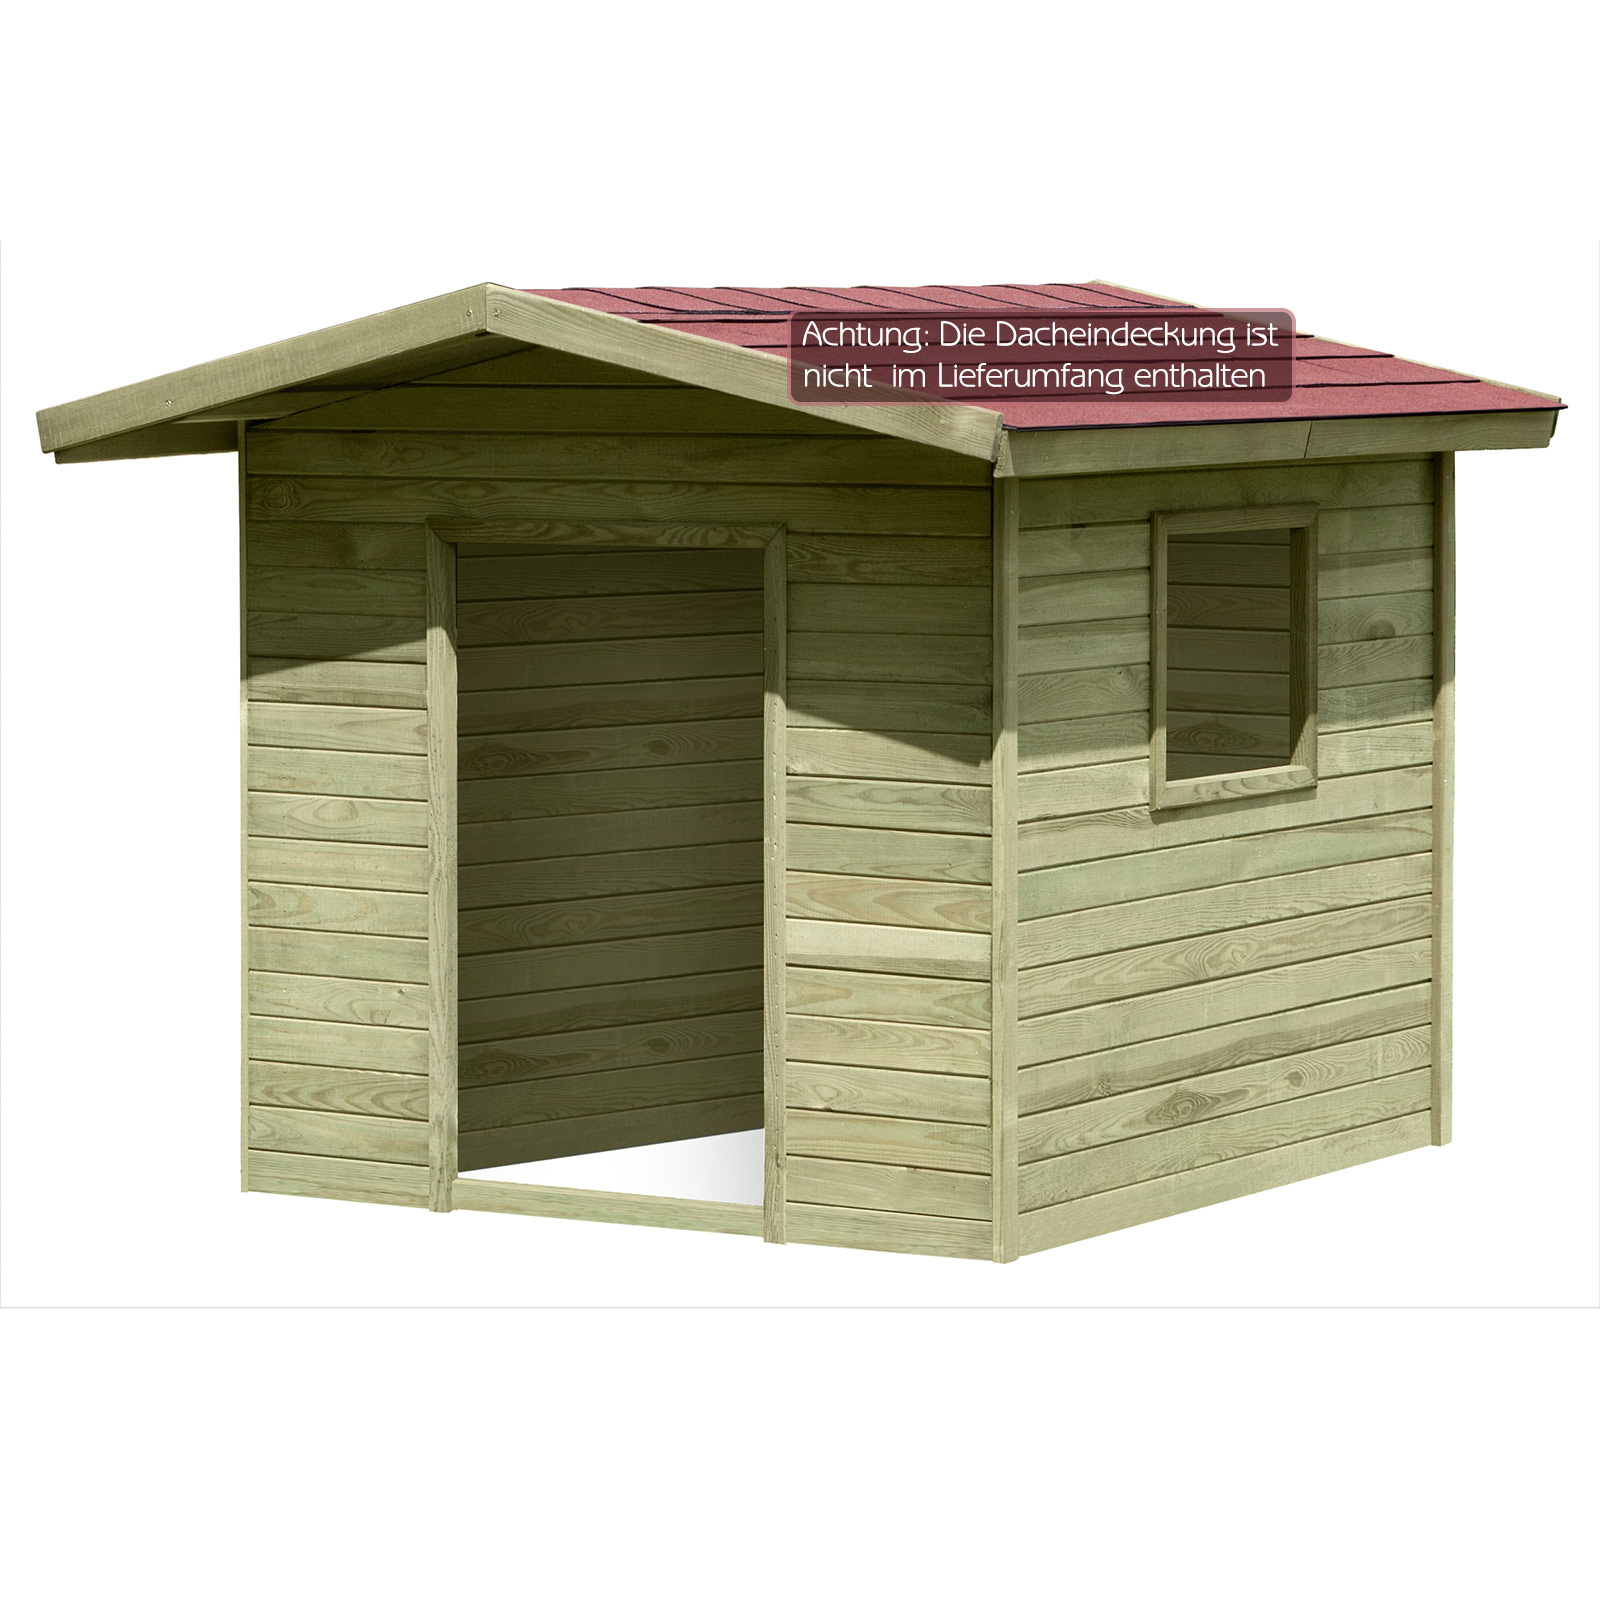 spielhaus lilli kinderspielhaus holzhaus gartenhaus f r kinder 1 2 x 1 2 m ebay. Black Bedroom Furniture Sets. Home Design Ideas